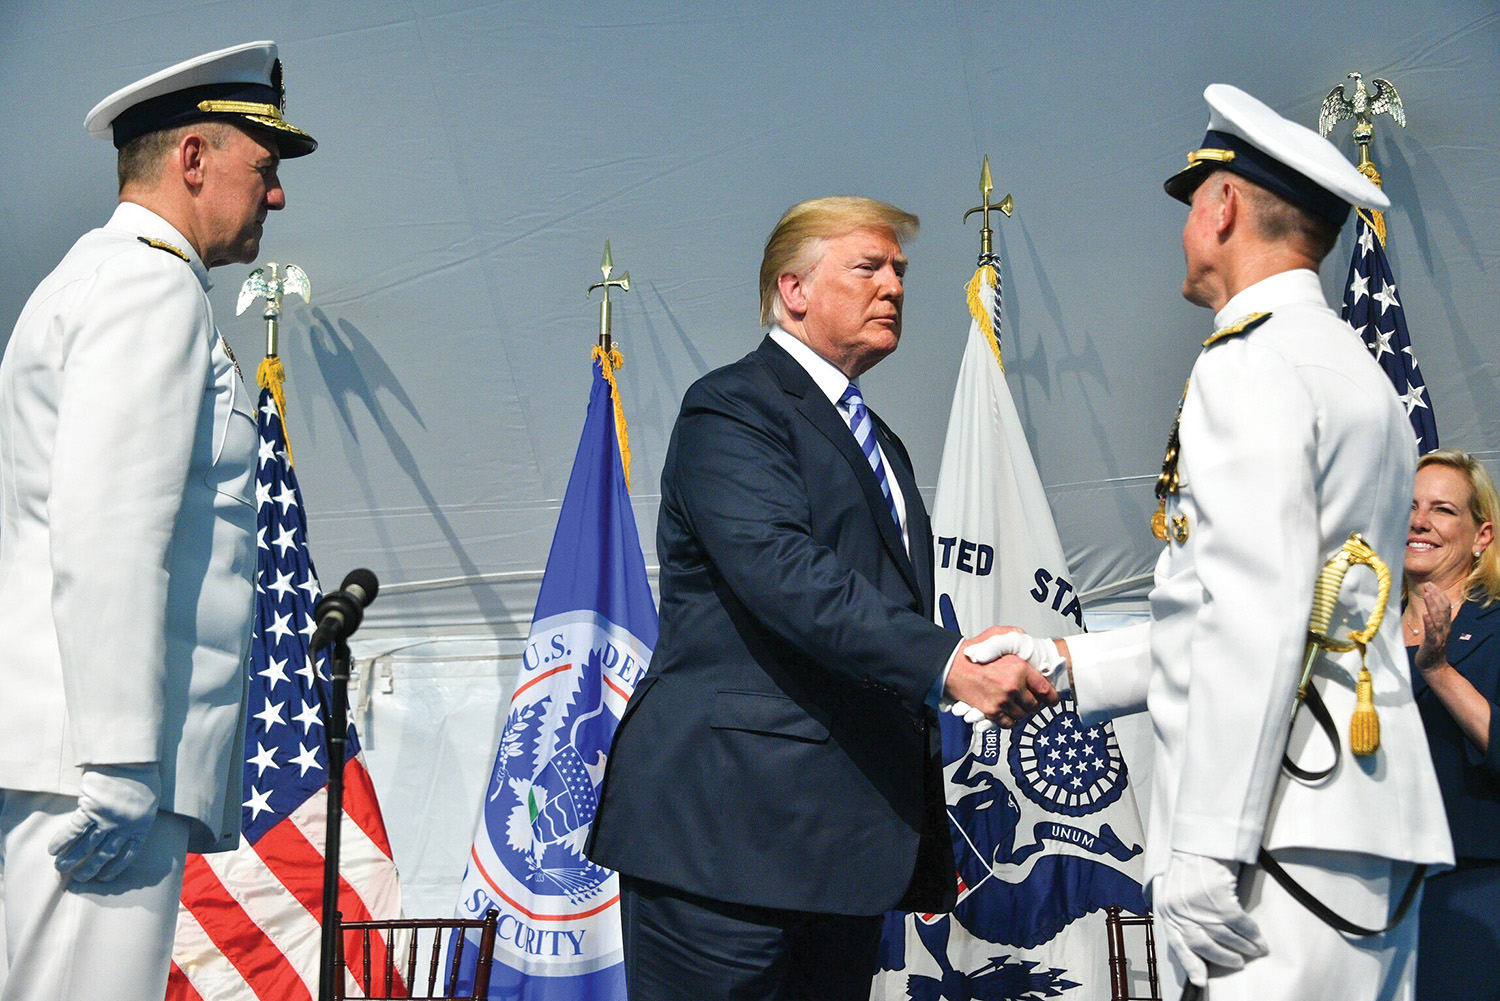 President Donald Trump congratulates Adm. Paul Zukunft during a change of command ceremony at Coast Guard Headquarters in Washington, D.C., June 1. During the ceremony Adm. Karl Schultz (left) relieved Zukunft to become the 26th commandant of the Coast Guard. (—U.S. Coast Guard photo by Petty Officer 1st Class Patrick Kelley.)